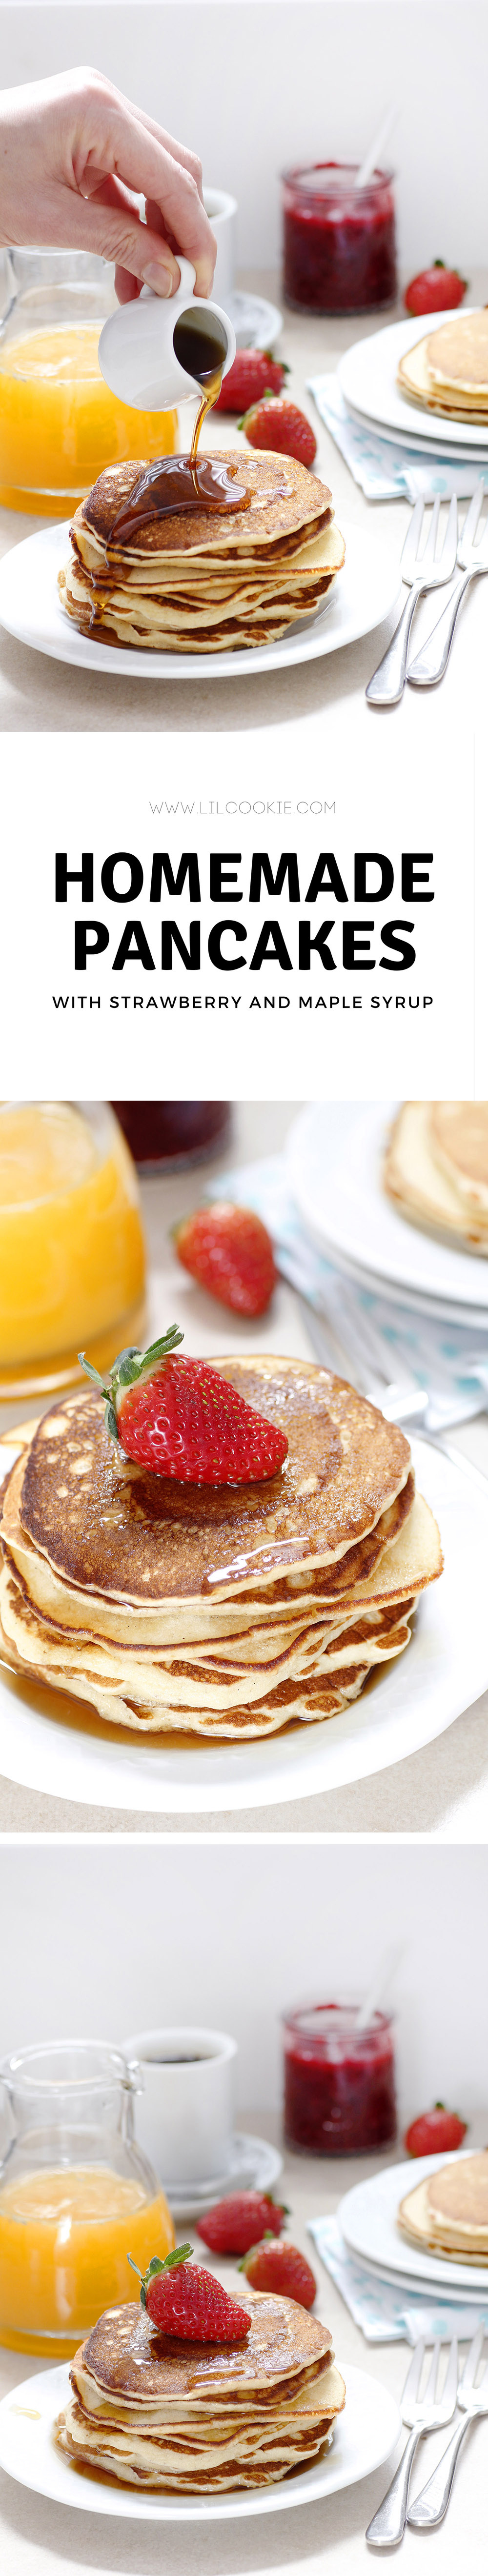 Homemade Pancakes #recipe #baking #breakfast #maple #strawberry #weekend #delicious